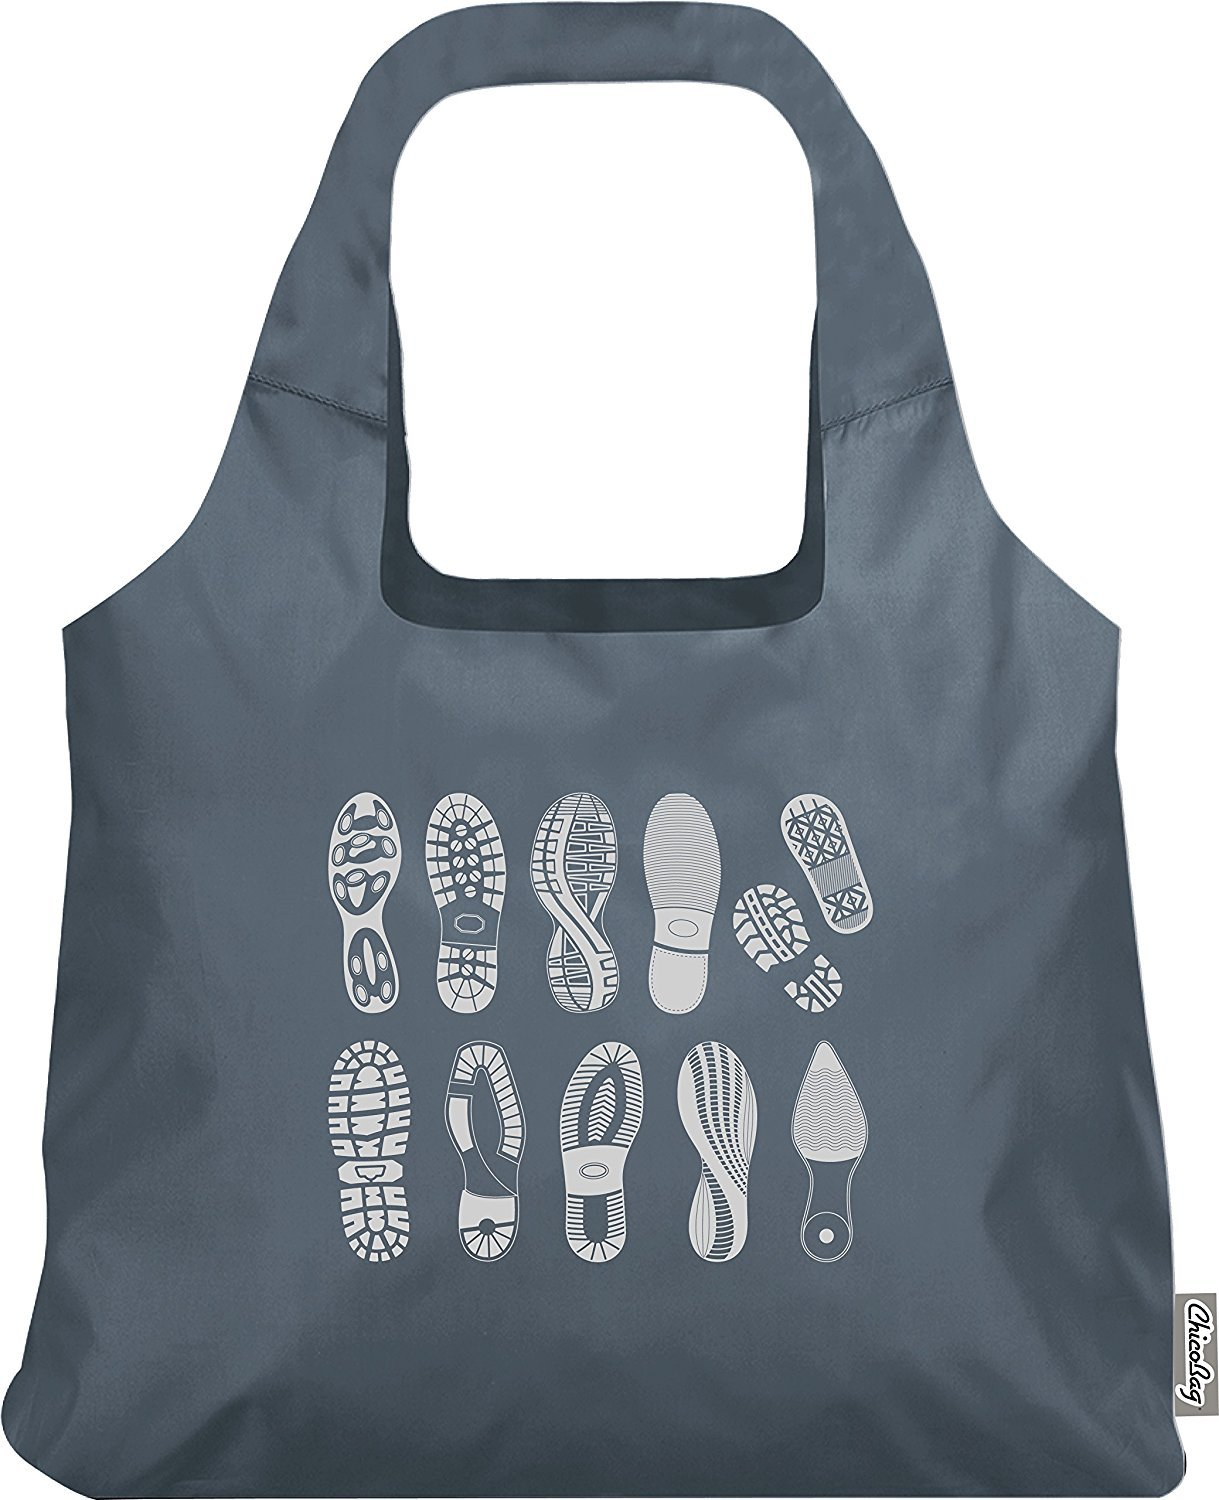 Special Edition Footprint ChicoBag - Earth-Friendly, Reusable and Collapsable Tote Perfect for Shopping, Travel and Throwing in a Bag or Purse by ChicoBag B00XWH0SPK Abyss (Grey)